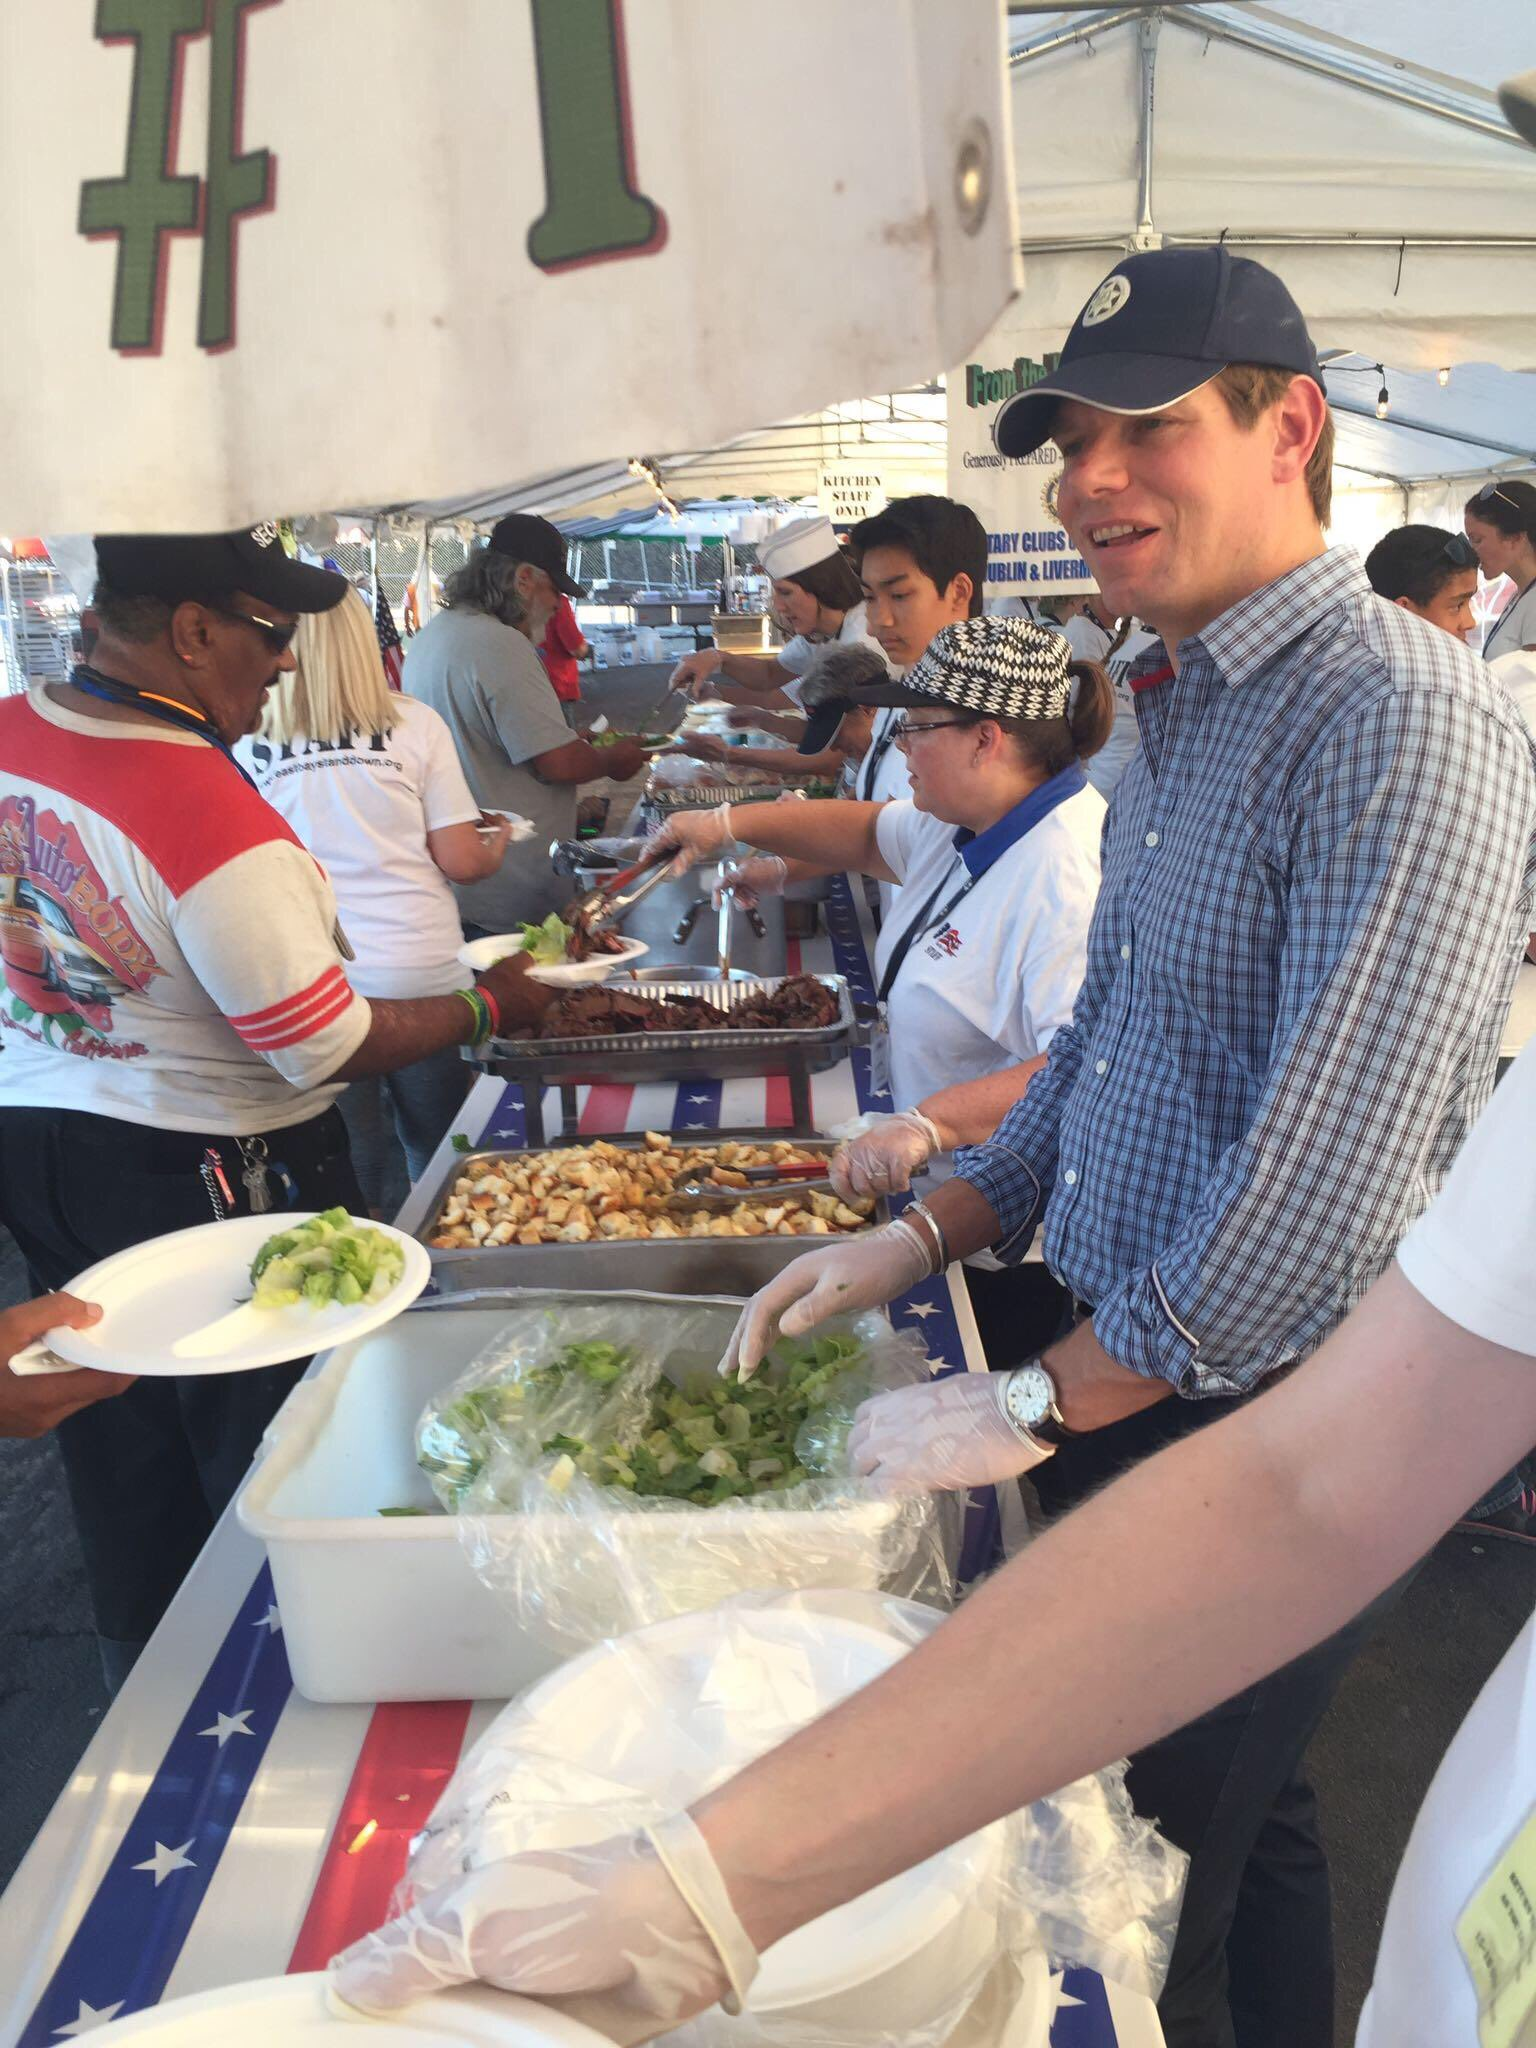 At East Bay Stand Down @EBSD, helping serve dinner to those who served our nation. https://t.co/utQ6Ei7X3D